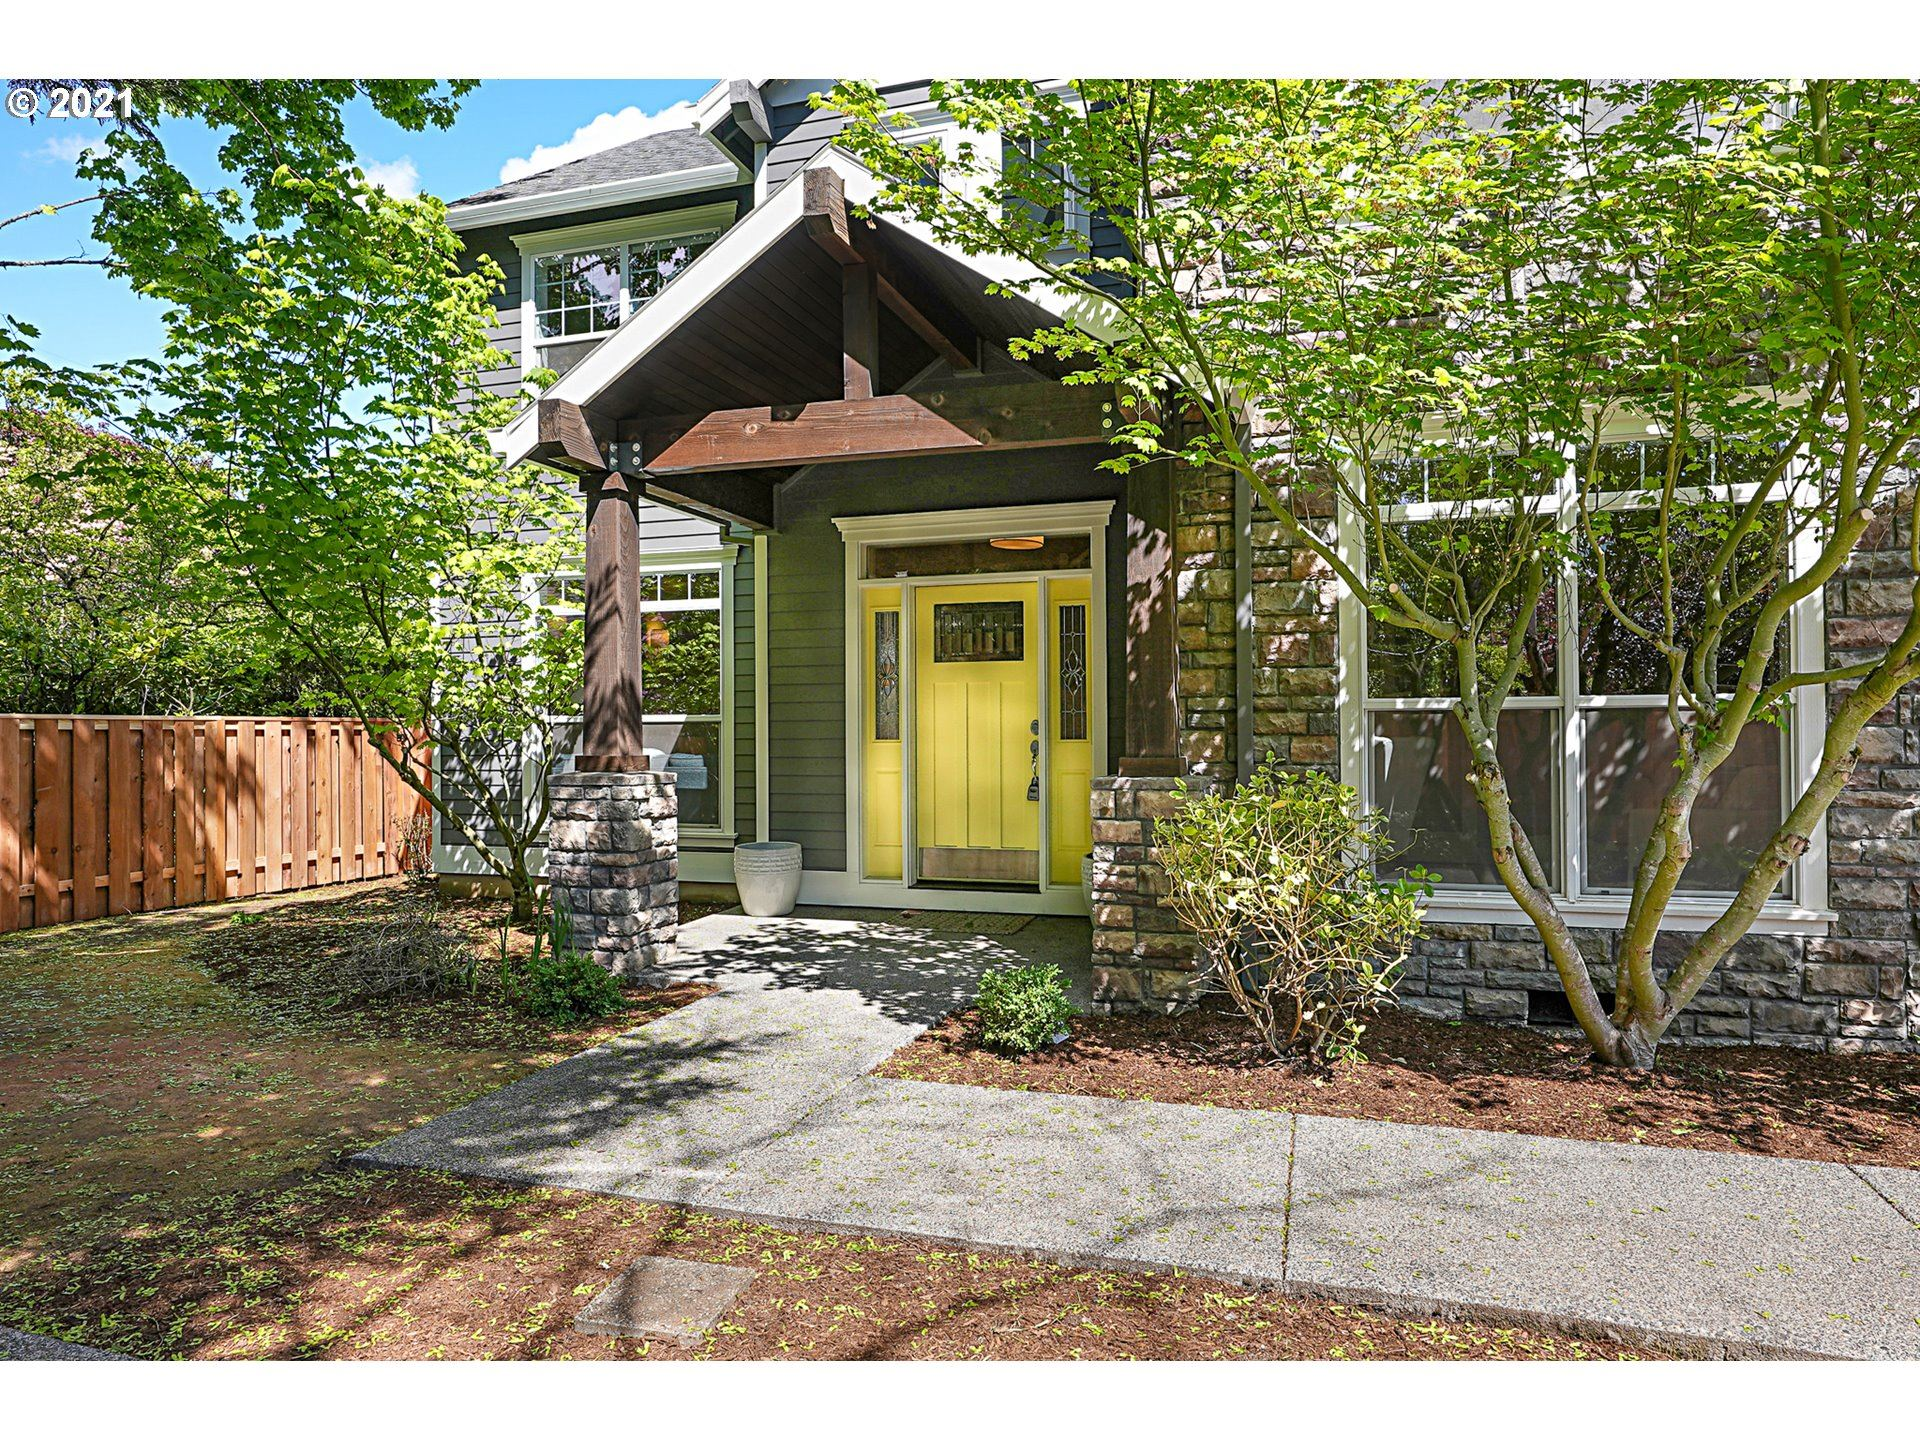 2122 SE 76TH AVE, Portland, OR 97215 - MLS#: 21435253